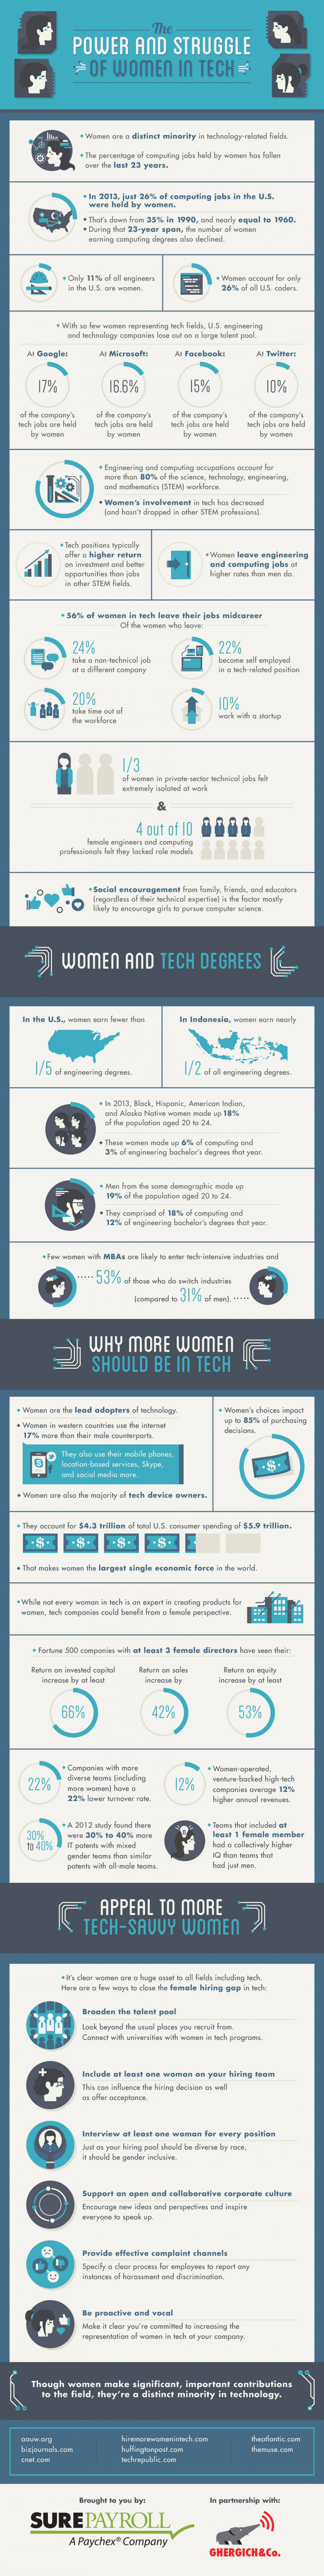 The Power & Struggle of Women in Tech Infographic